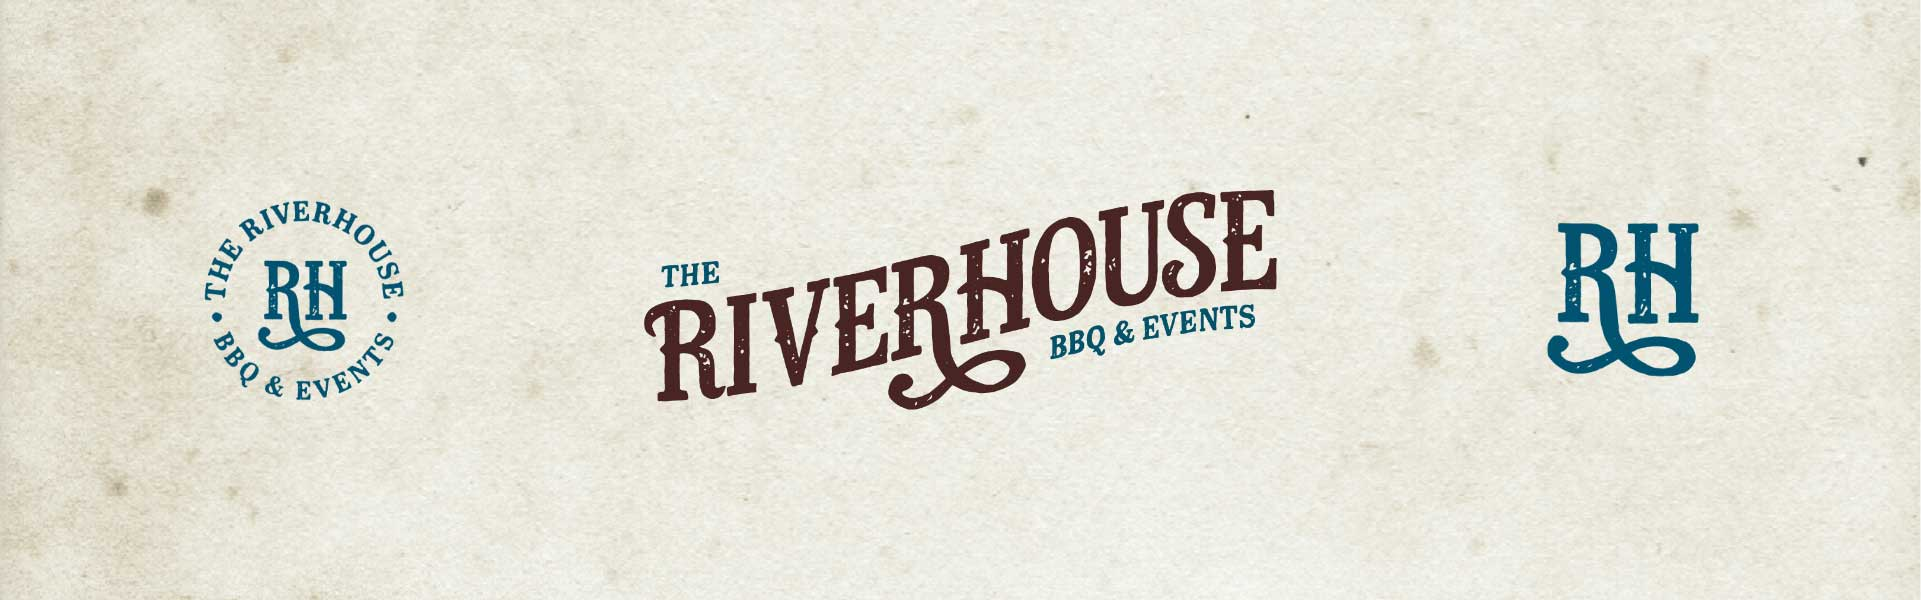 three versions of the Riverhouse logo side-by-side